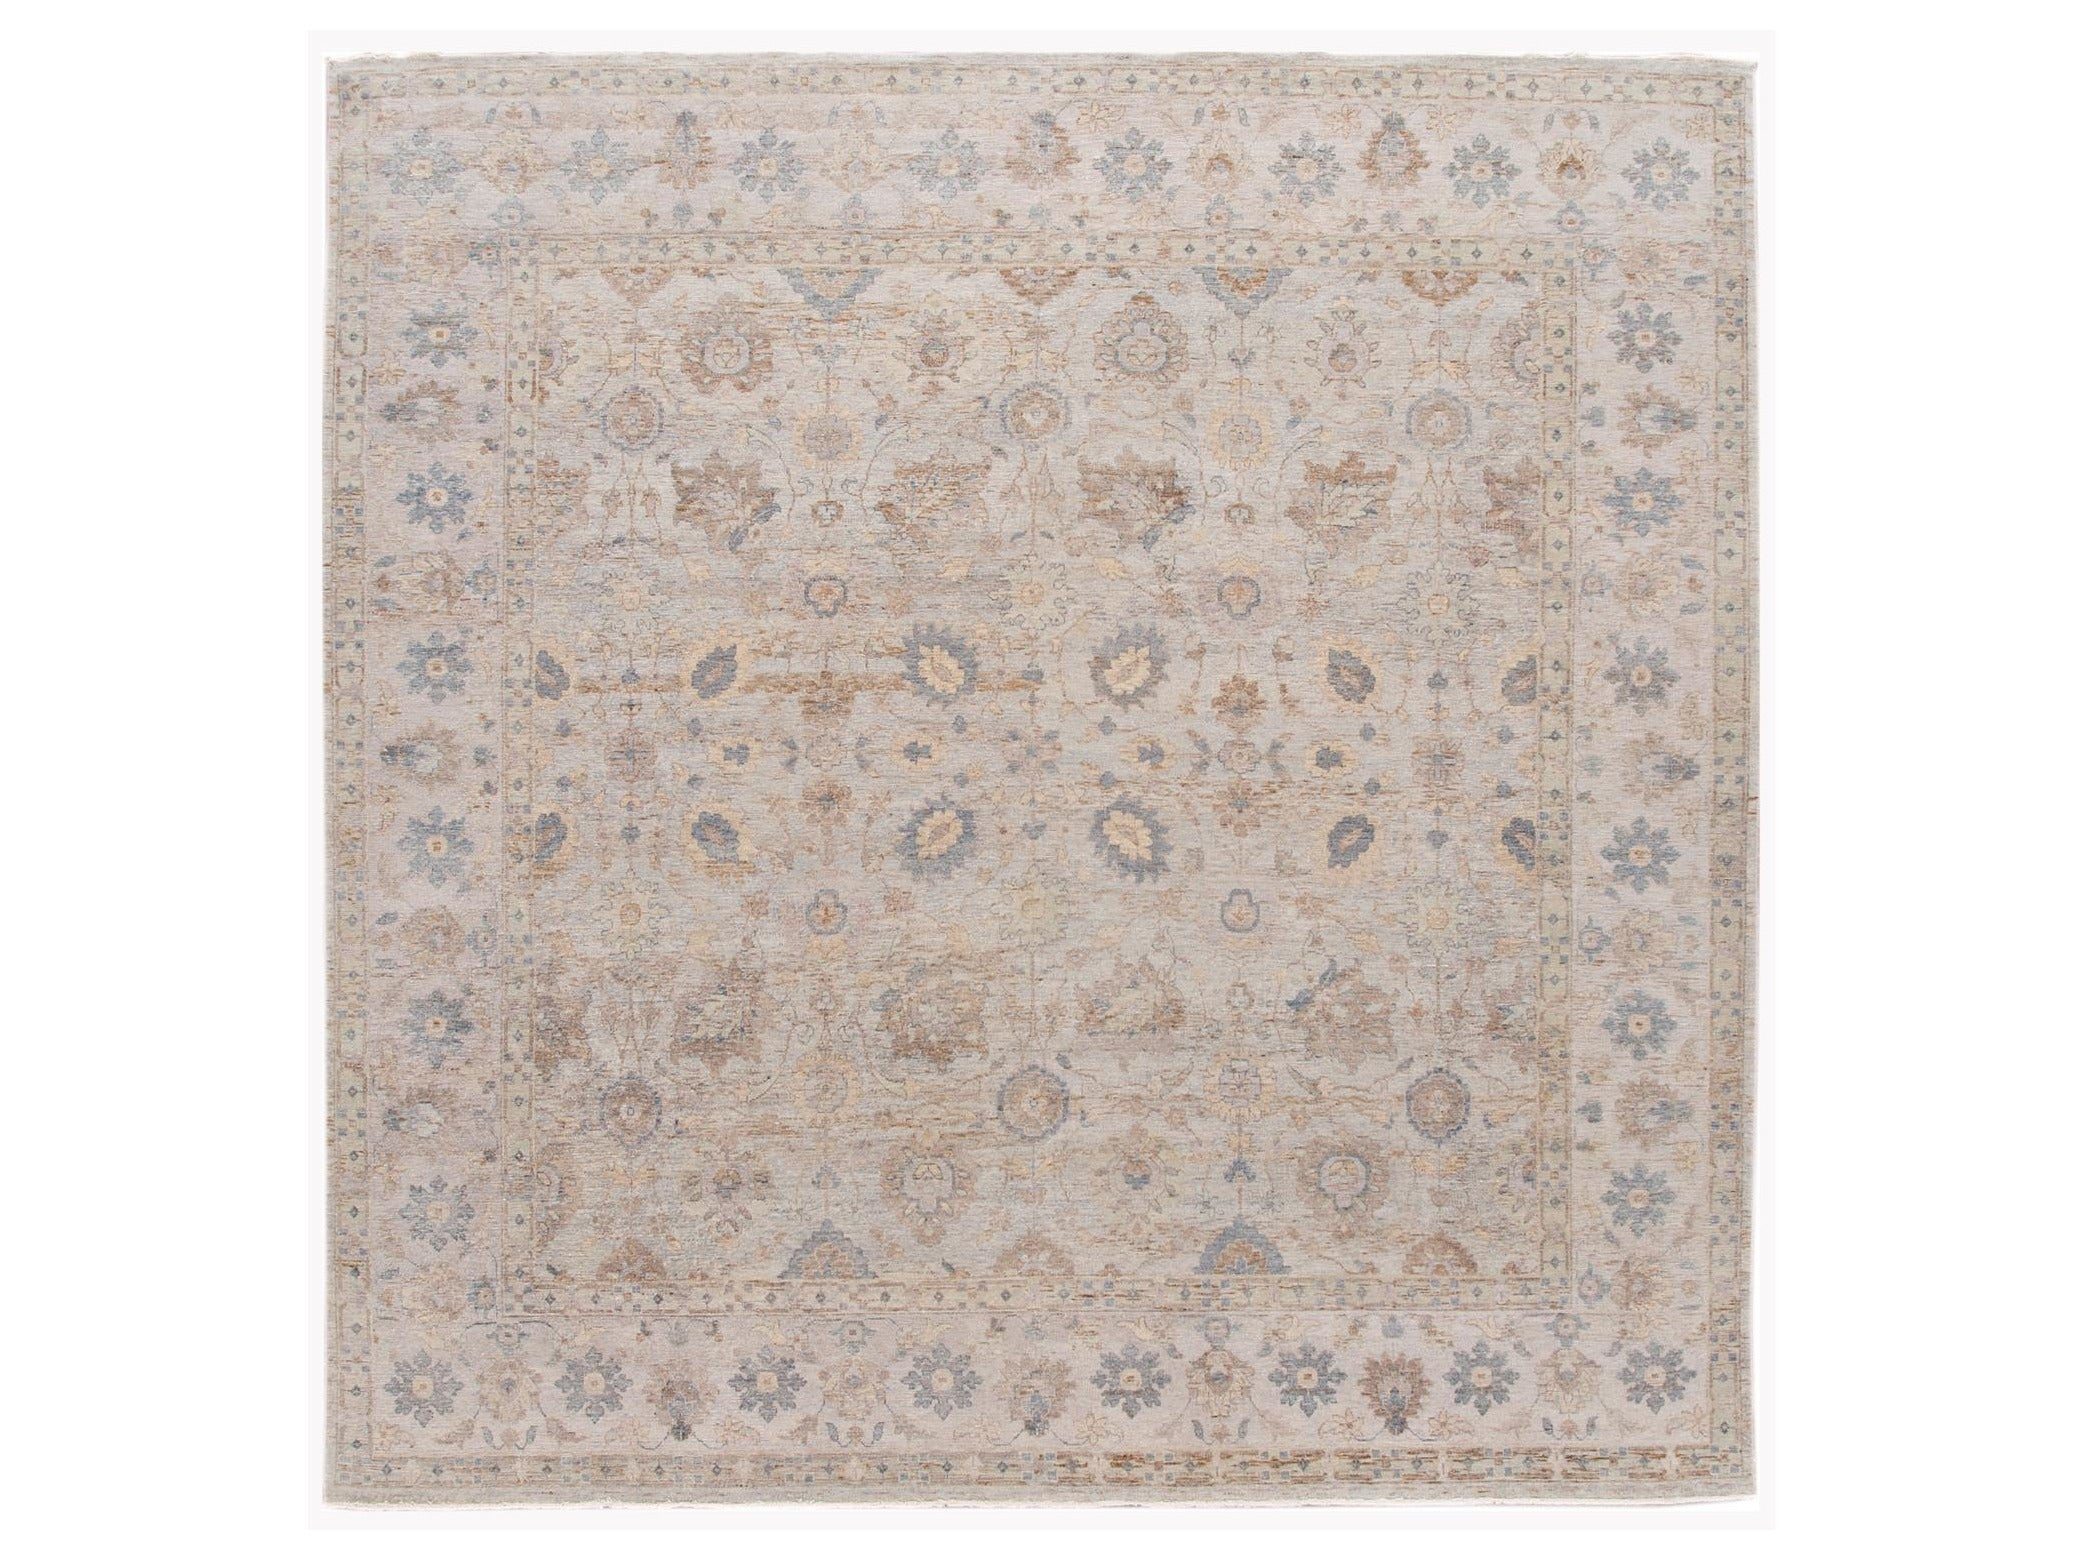 21st Century Contemporary Indian Wool Rug, 10 X 10